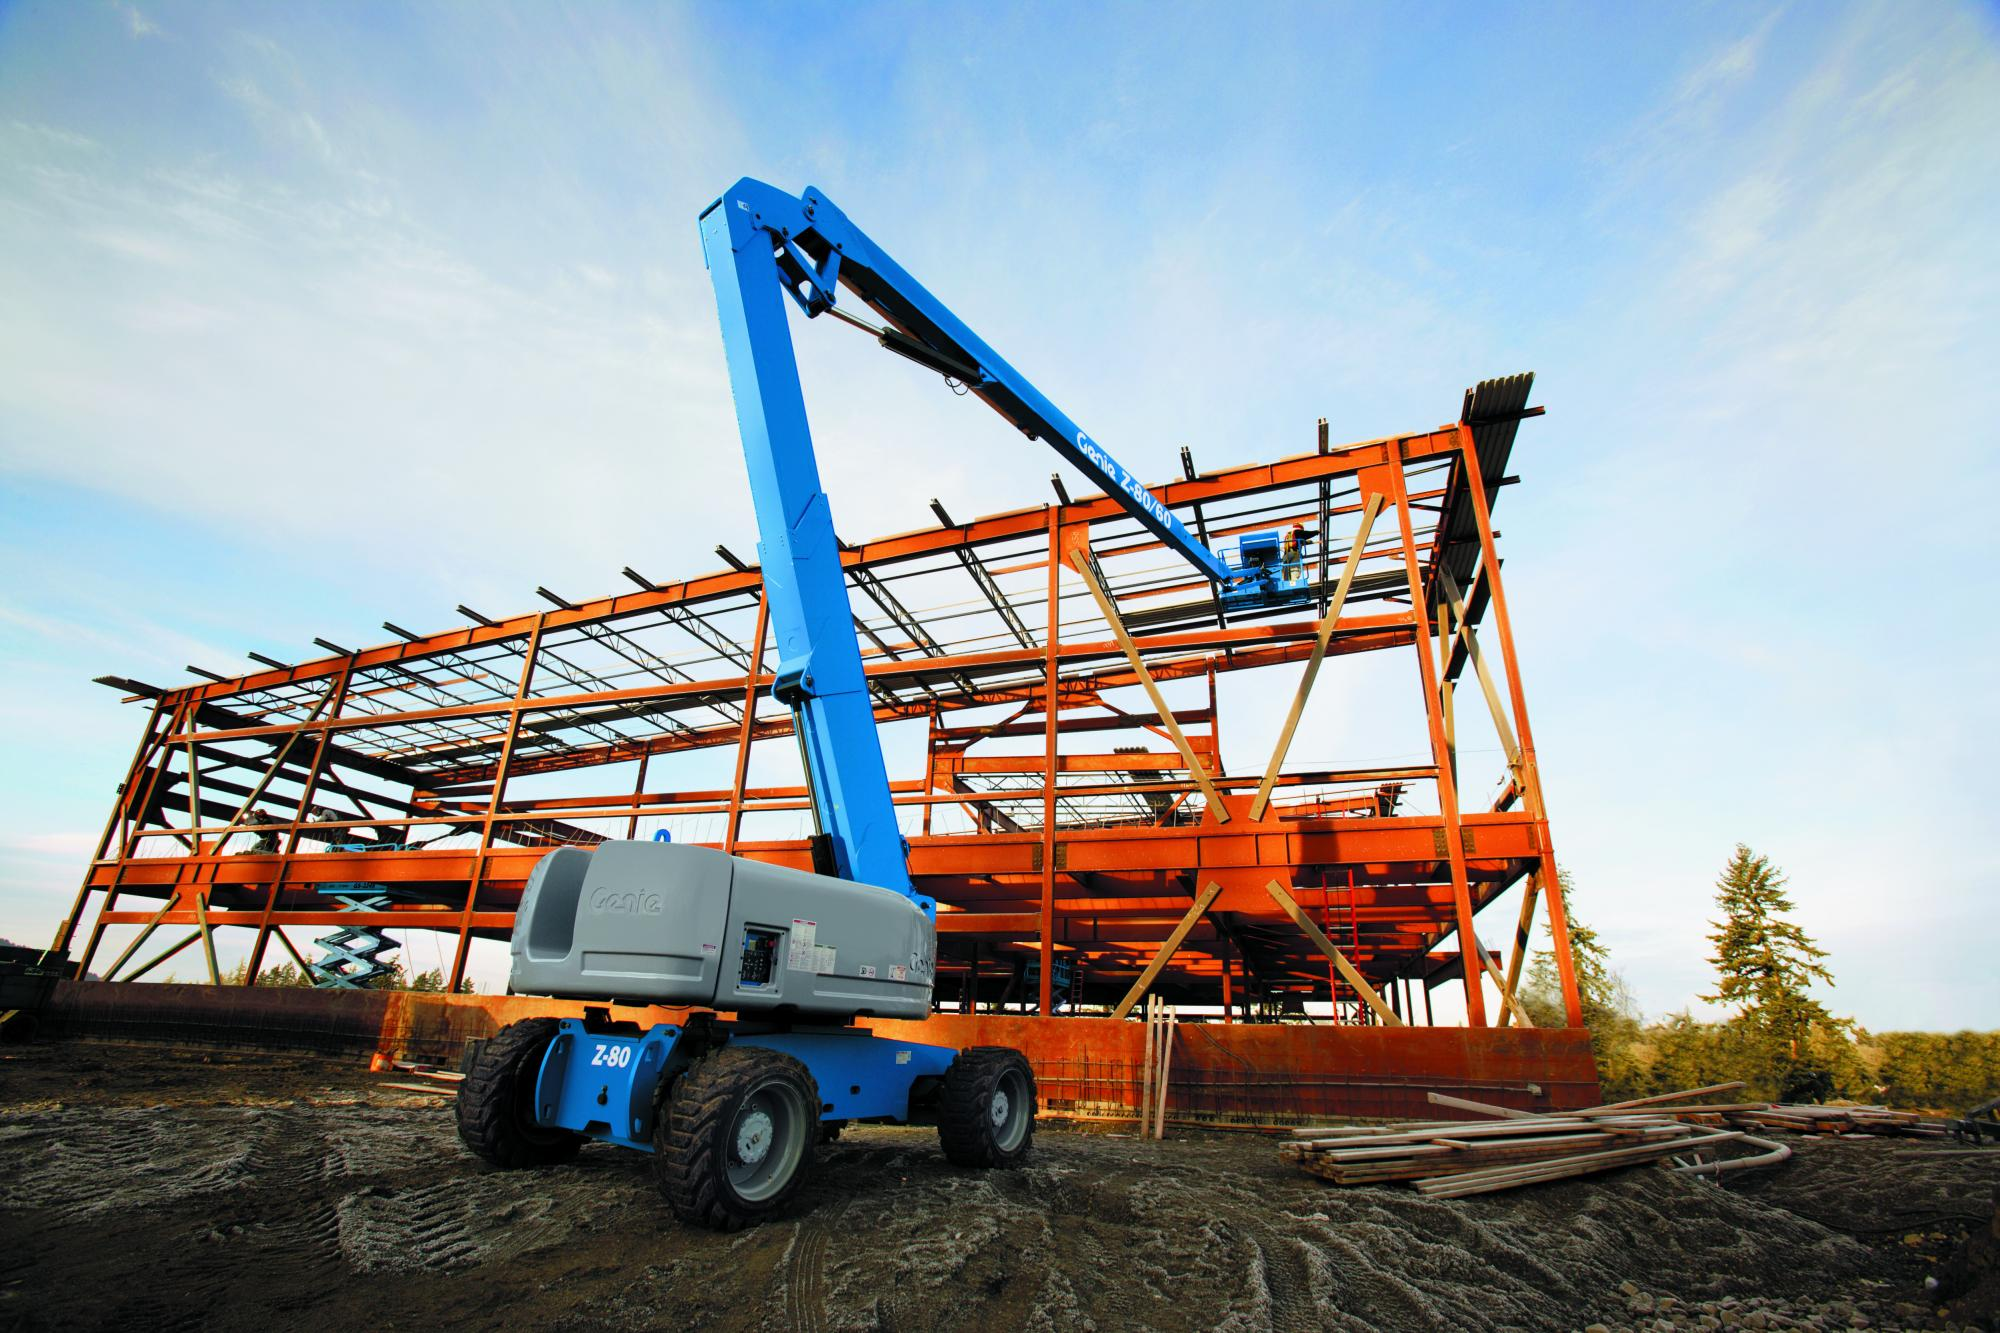 Genie® Z80/60 Articulated Boom Lift